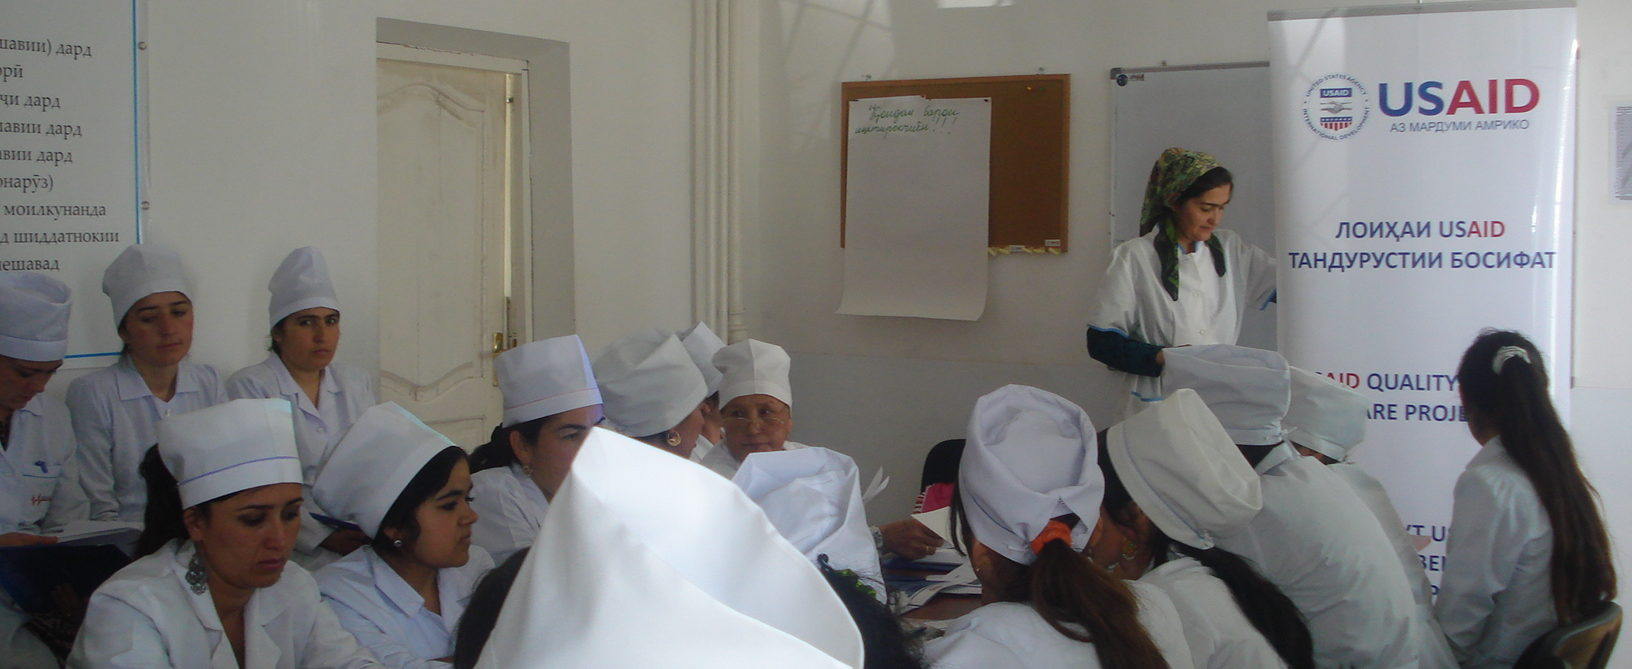 doctors in white coats by a USAID banner